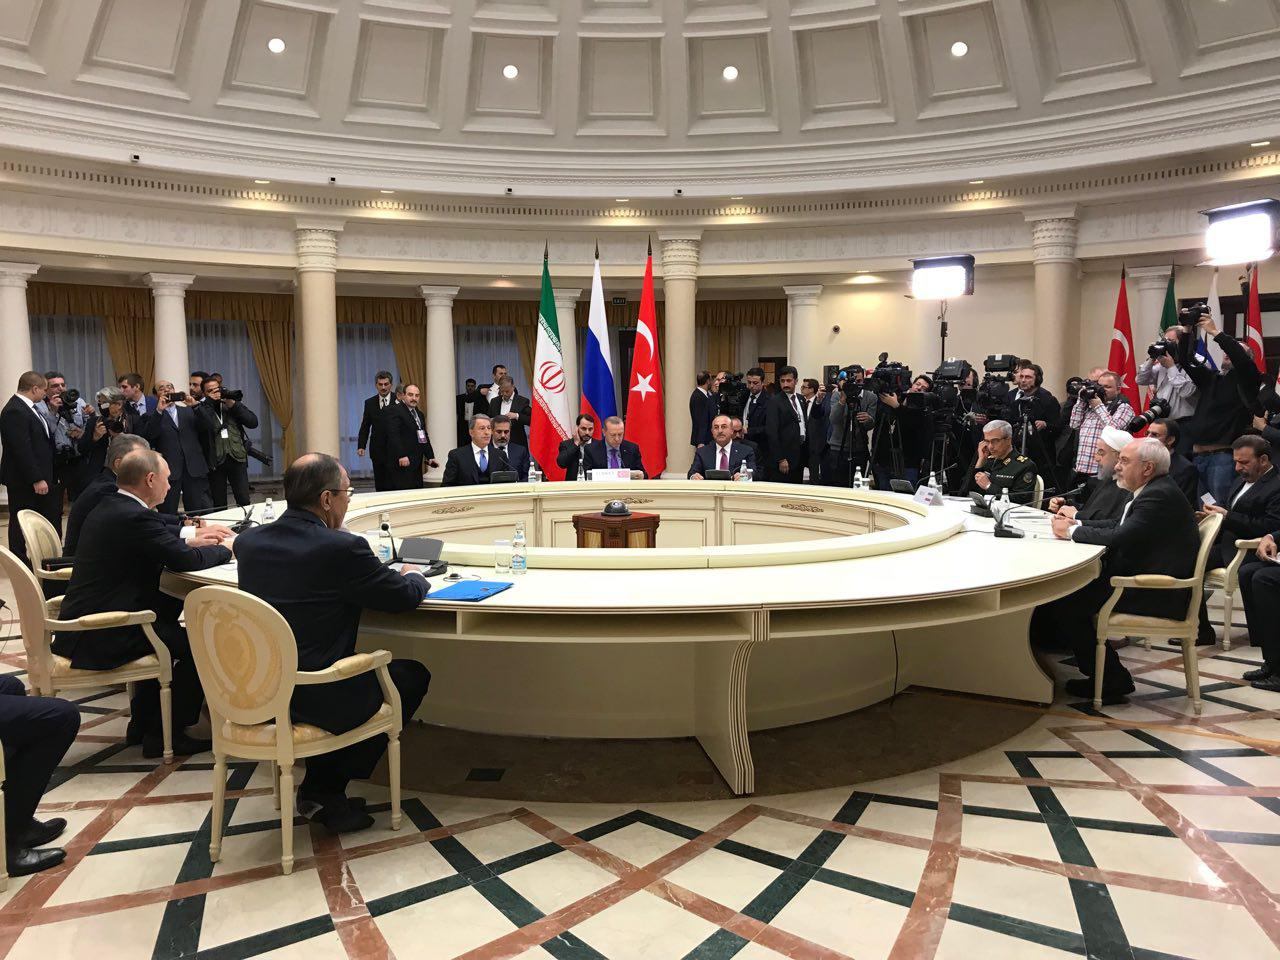 Iran, Russia, Turkey call for unity, independence of Syria